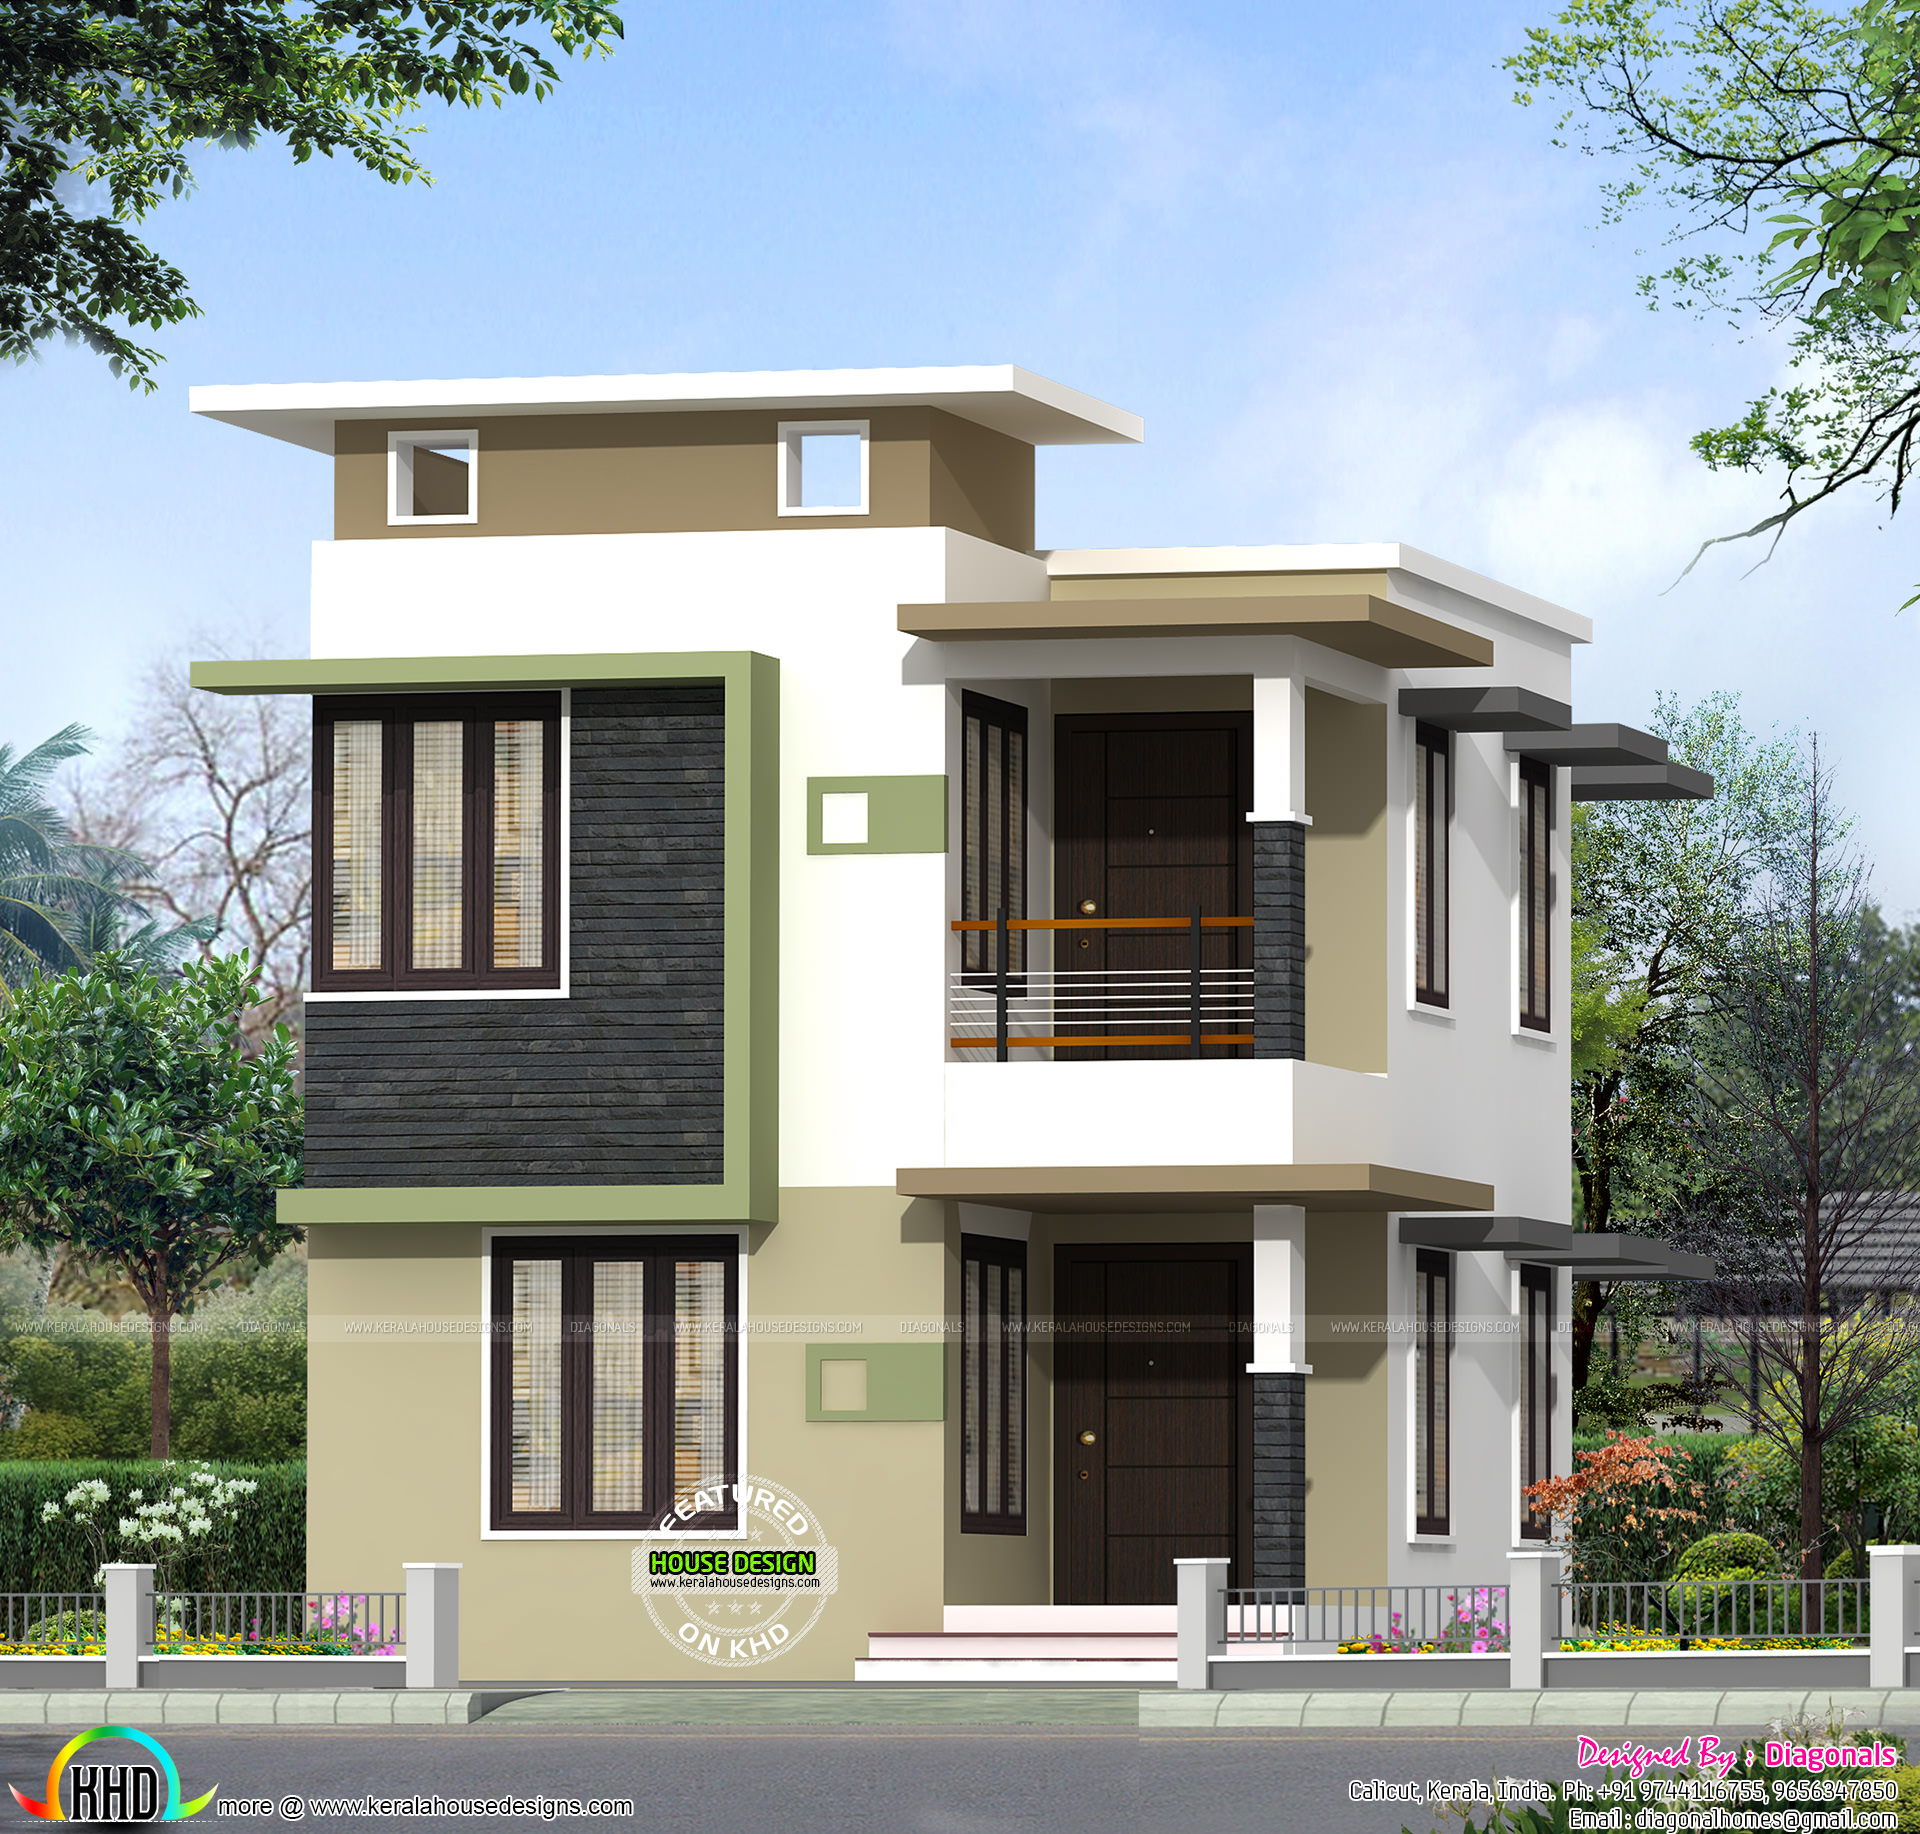 Front Design Of Duplex House Part - 39: Image Result For Front Elevation Designs For Duplex Houses In India | Front  Elevation | Pinterest | Front Elevation Designs, India And House